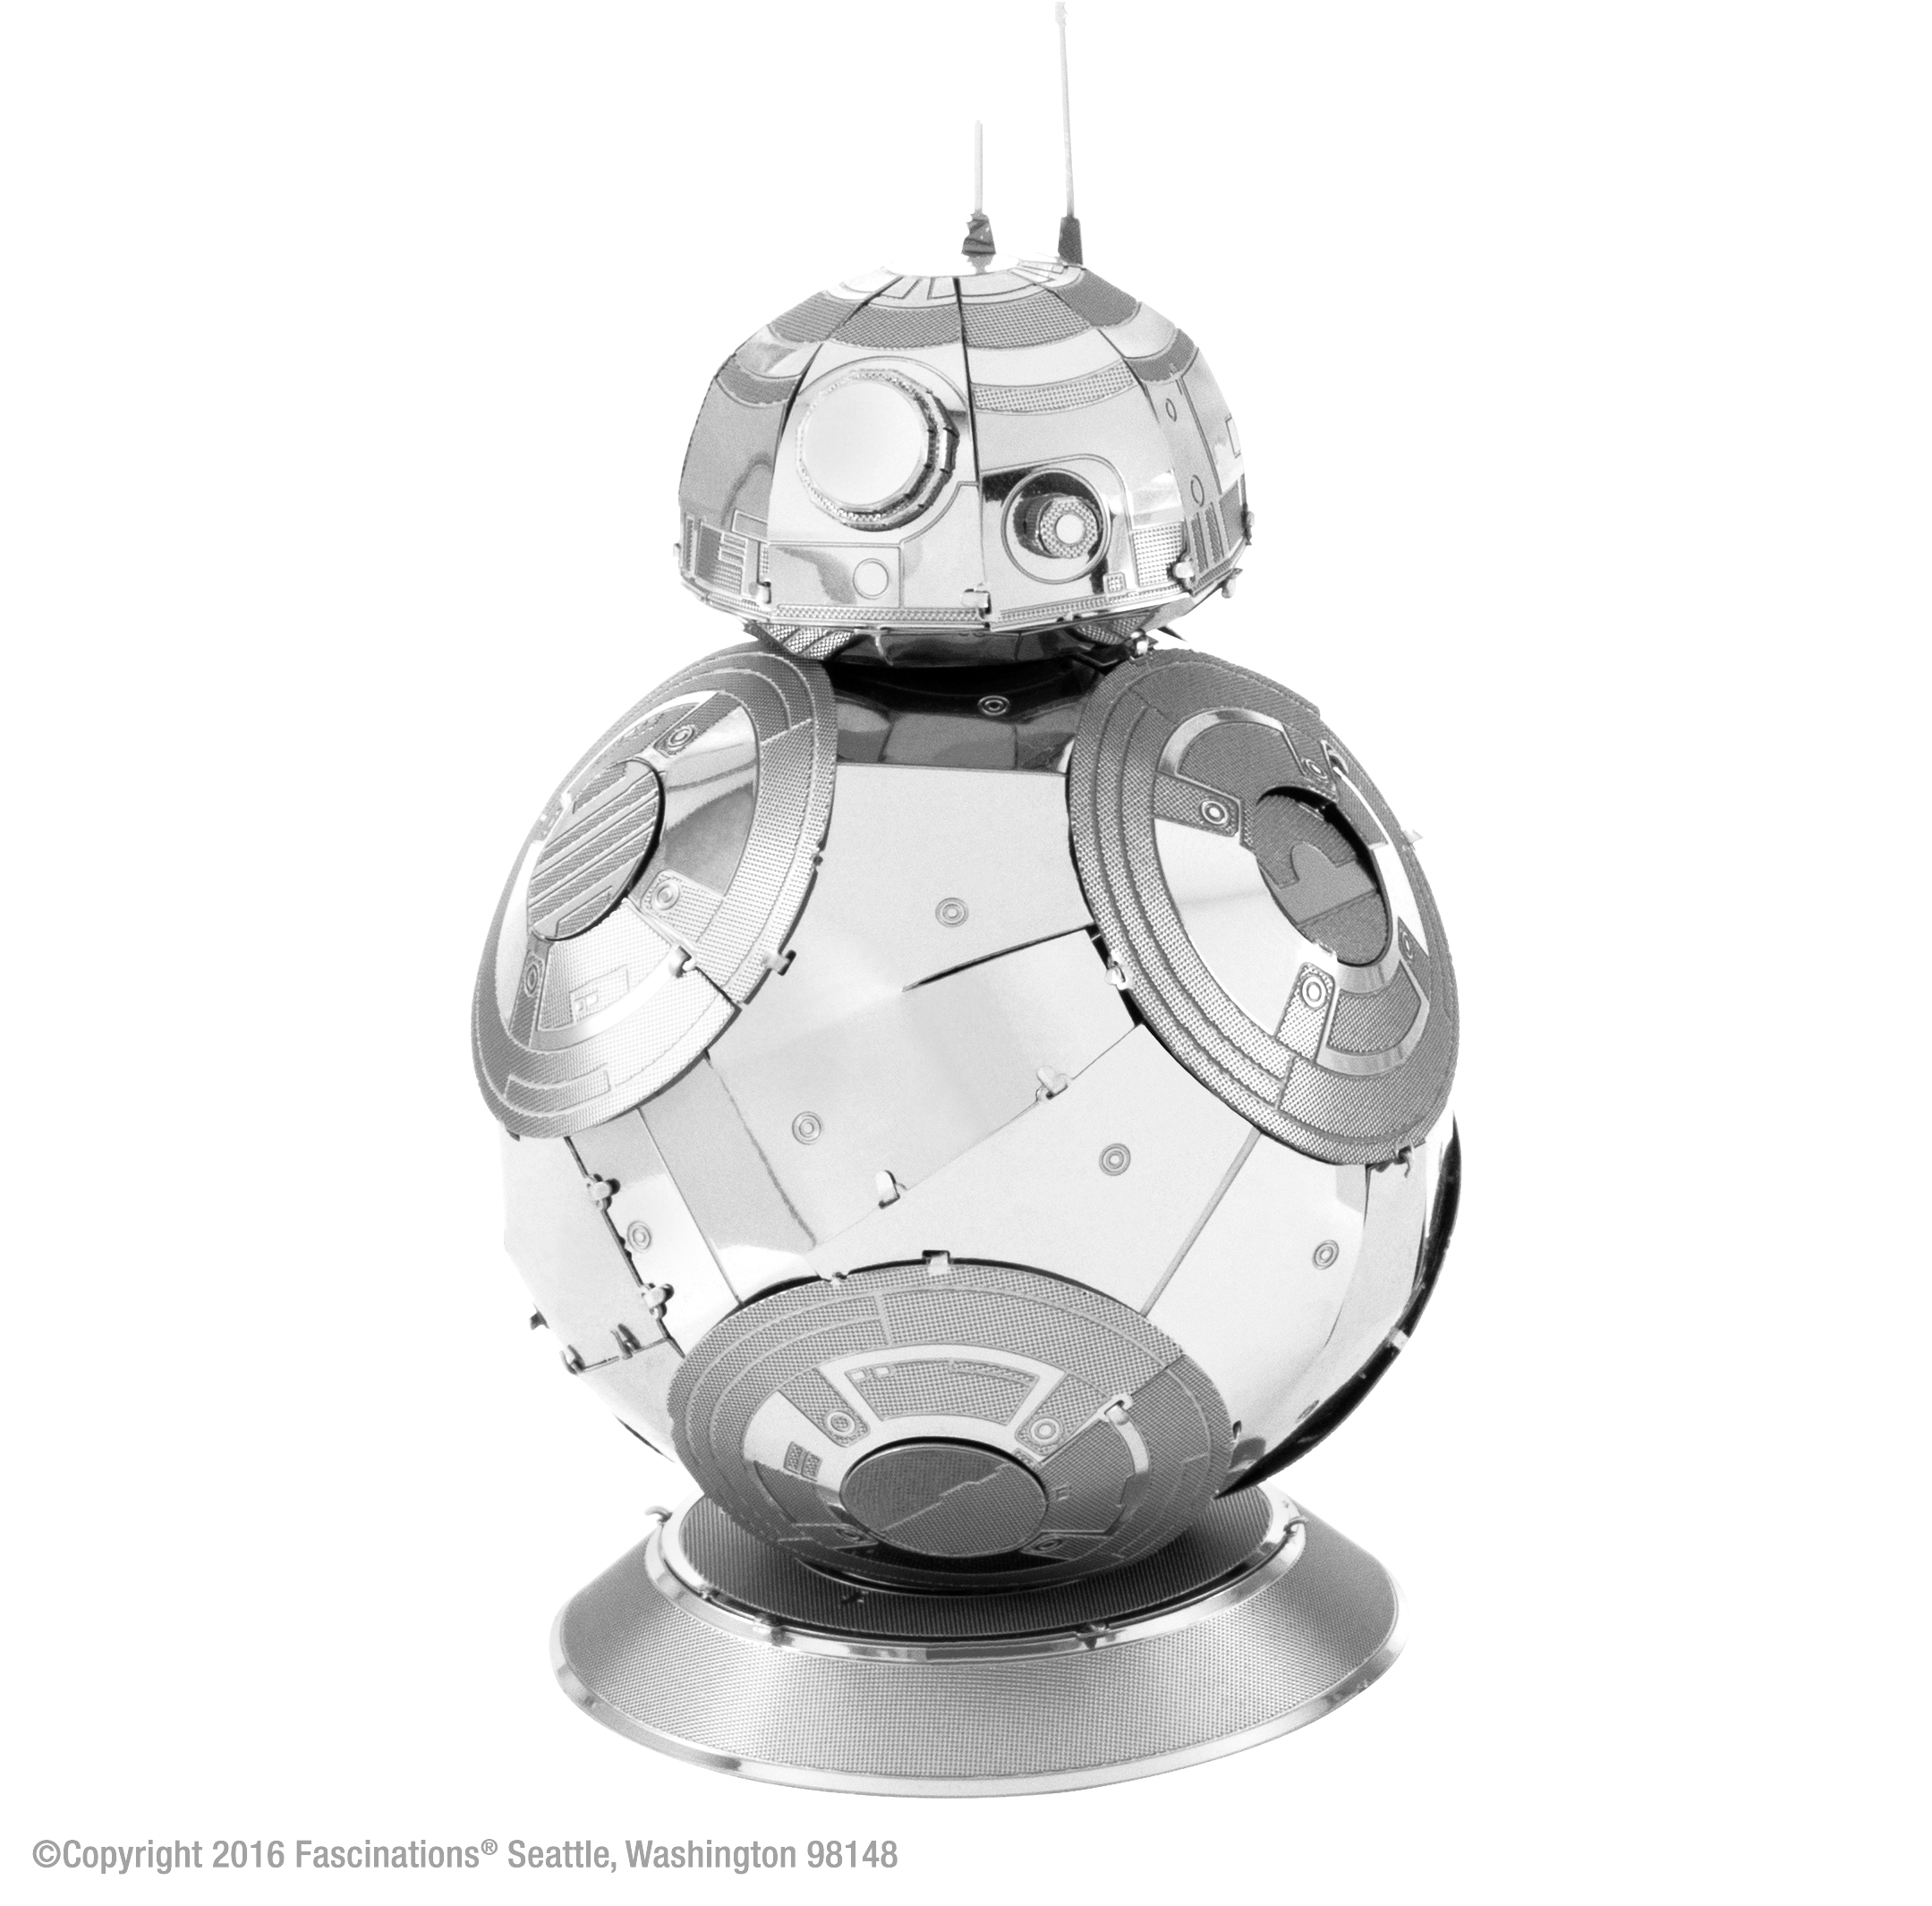 Fascinations Metal Earth 3D Metal Model Kit Star Wars Episode 7 BB-8 by Fascinations